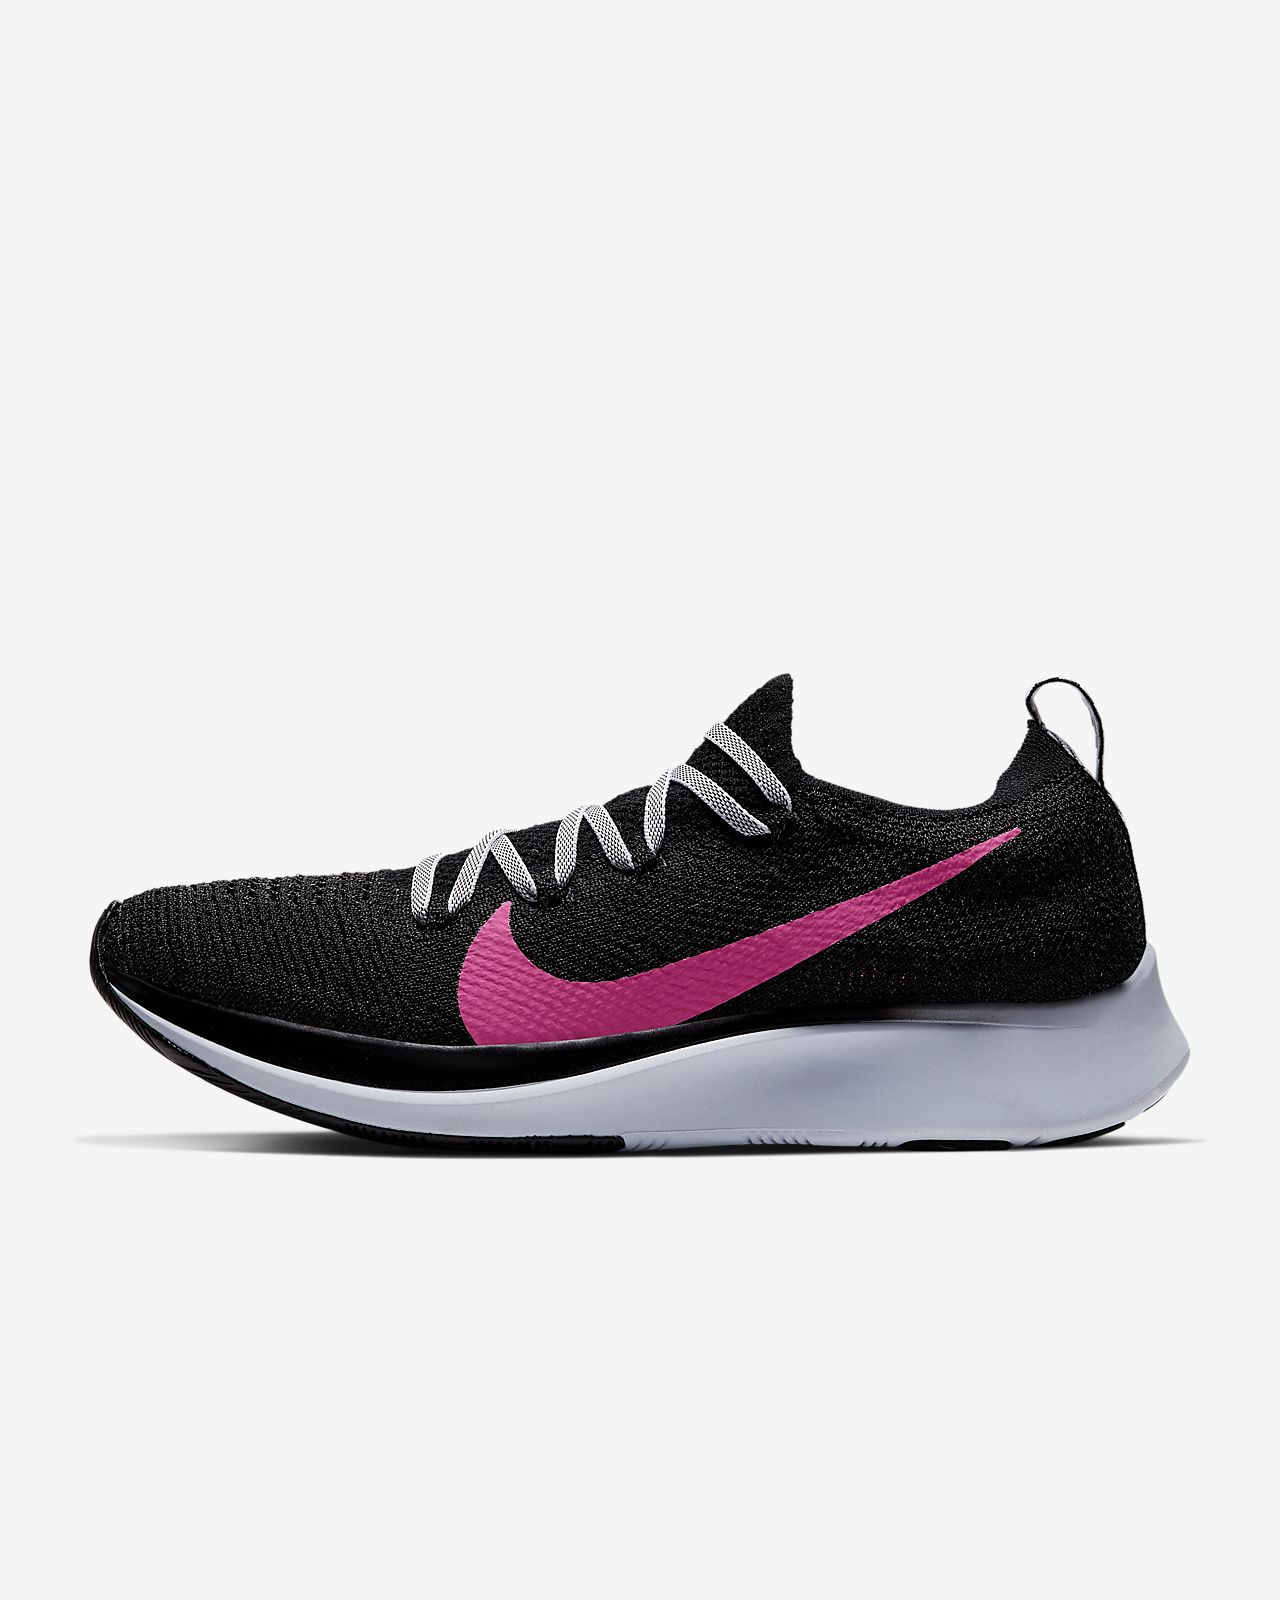 best service 4e3b3 d2a60 ... Nike Zoom Fly Flyknit Women s Running Shoe